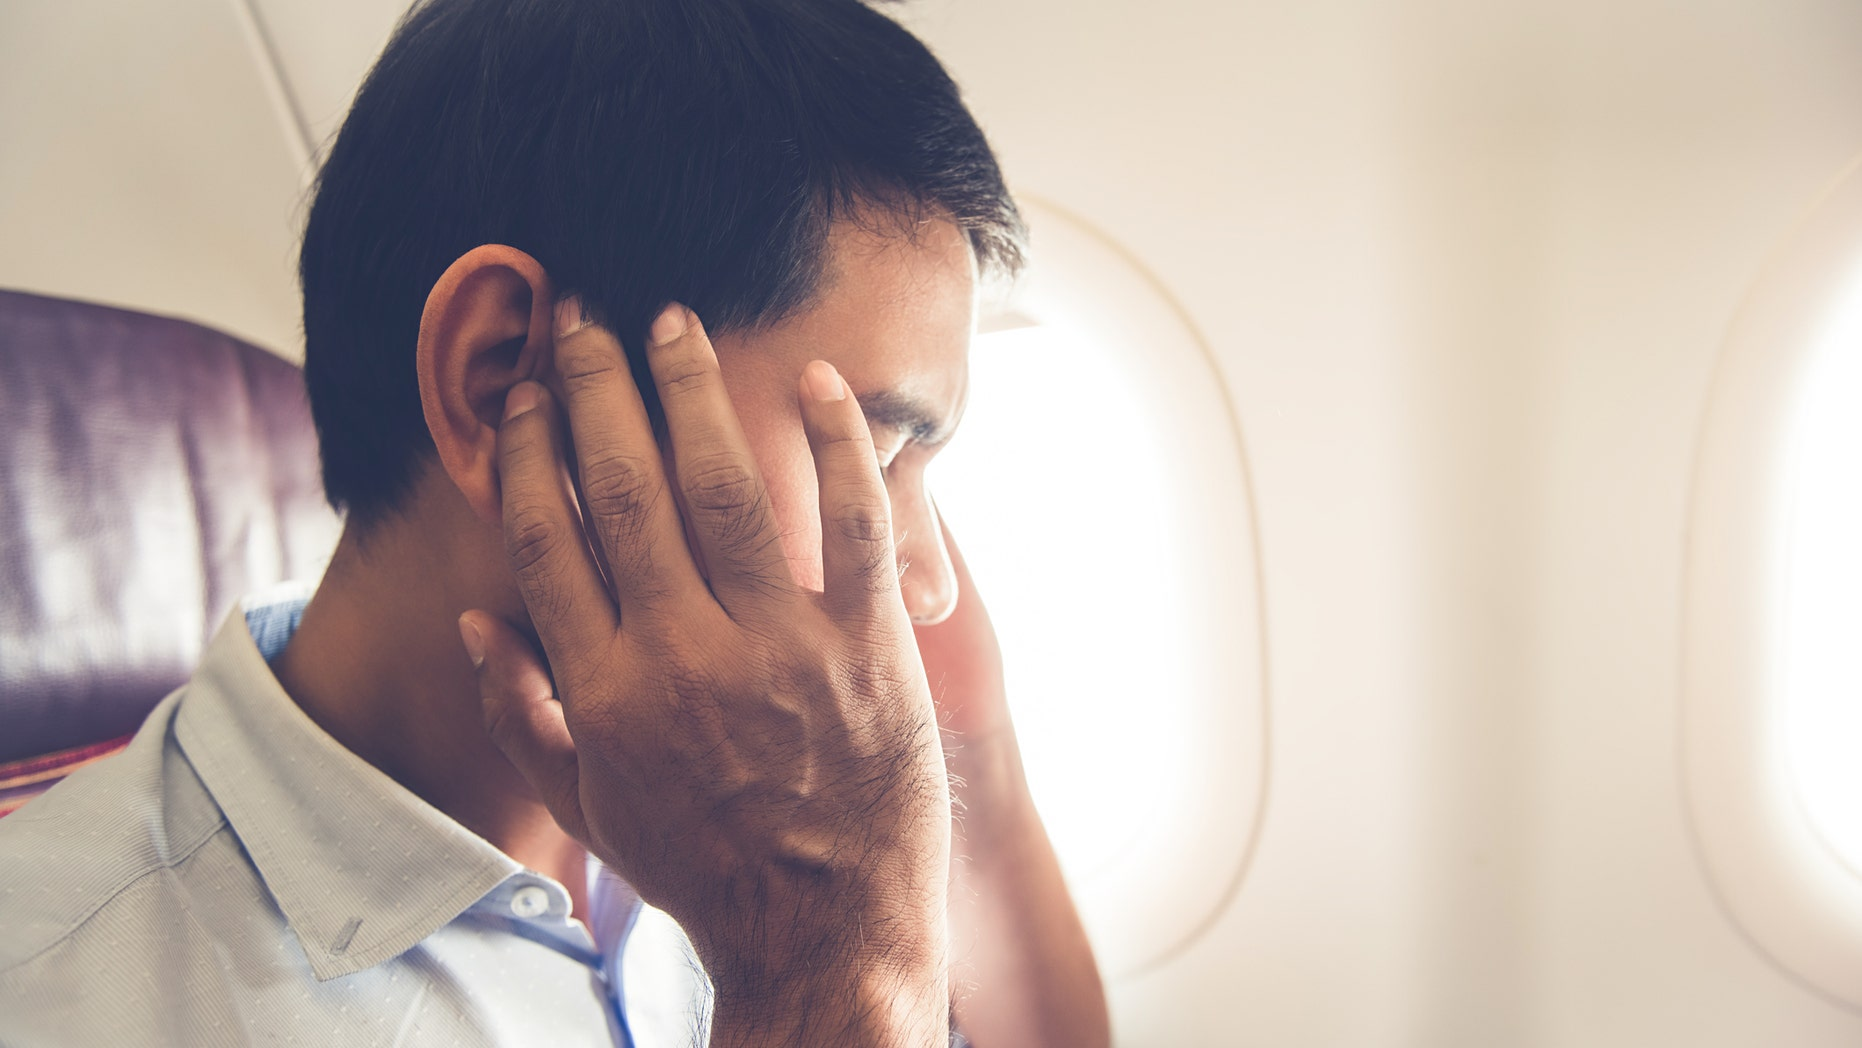 You may not be able to avoid flying, but you might be able to keep the anxiety at bay.